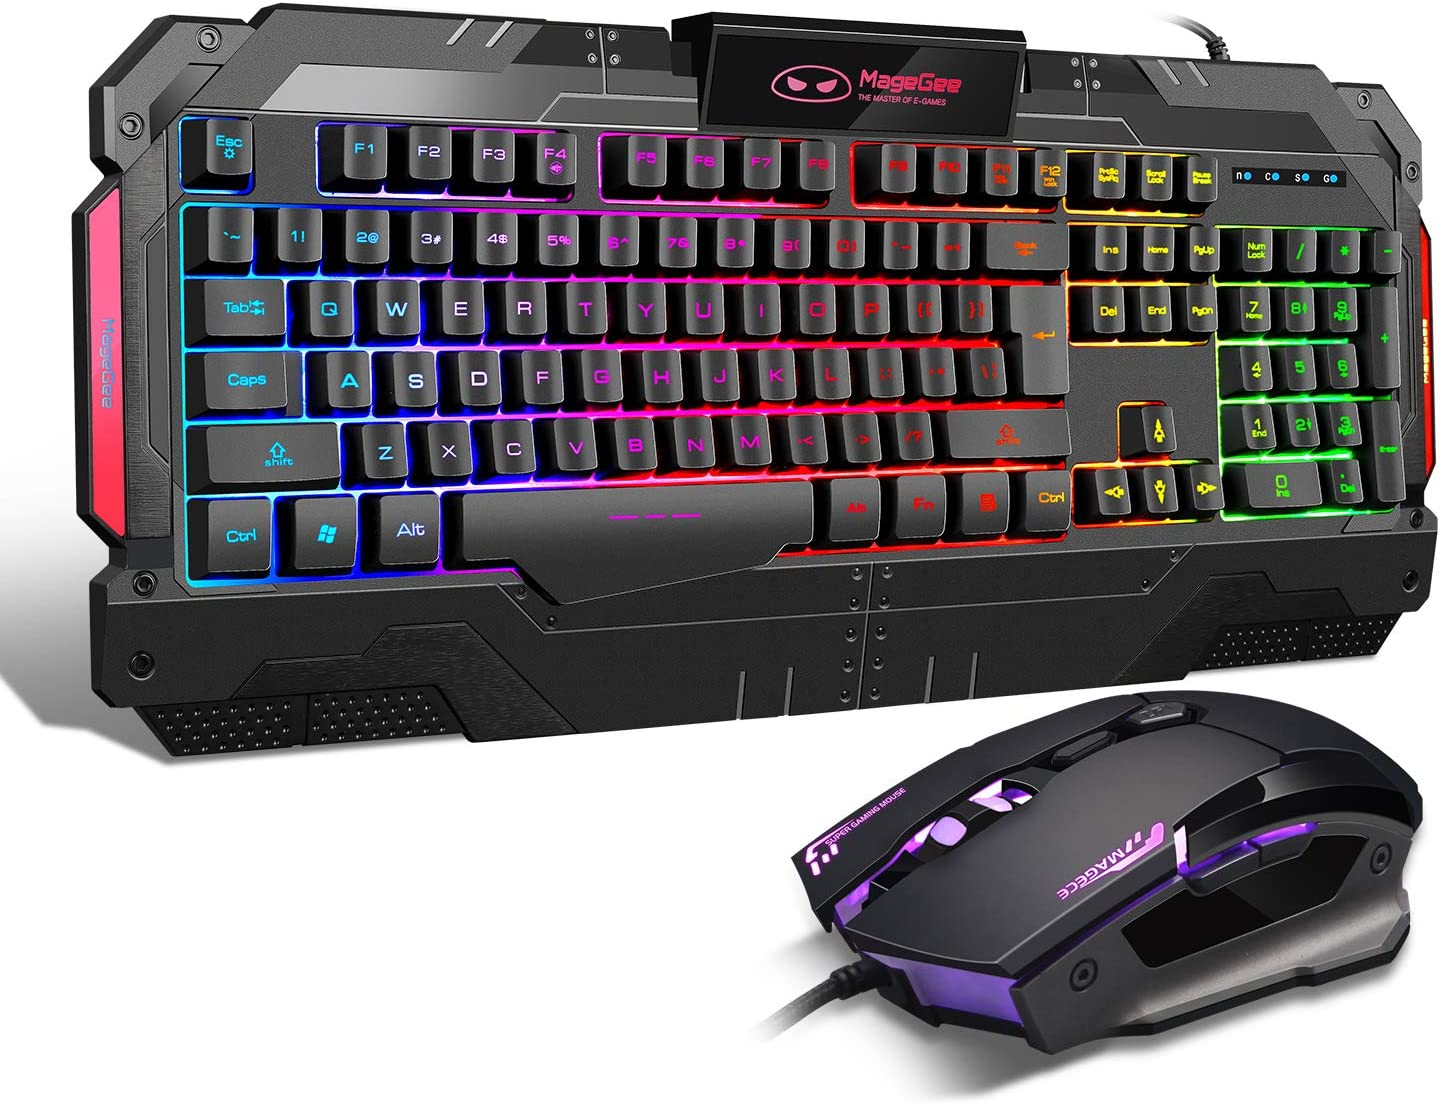 USB Gaming Mouse Gaming Keyboard Combo, GK806 LED Rainbow Backlit Keyboard and Mouse Set, G7 Gaming Mouse and Keyboard 104 Key Computer PC Gaming Keyboard with Wrist Rest-Black